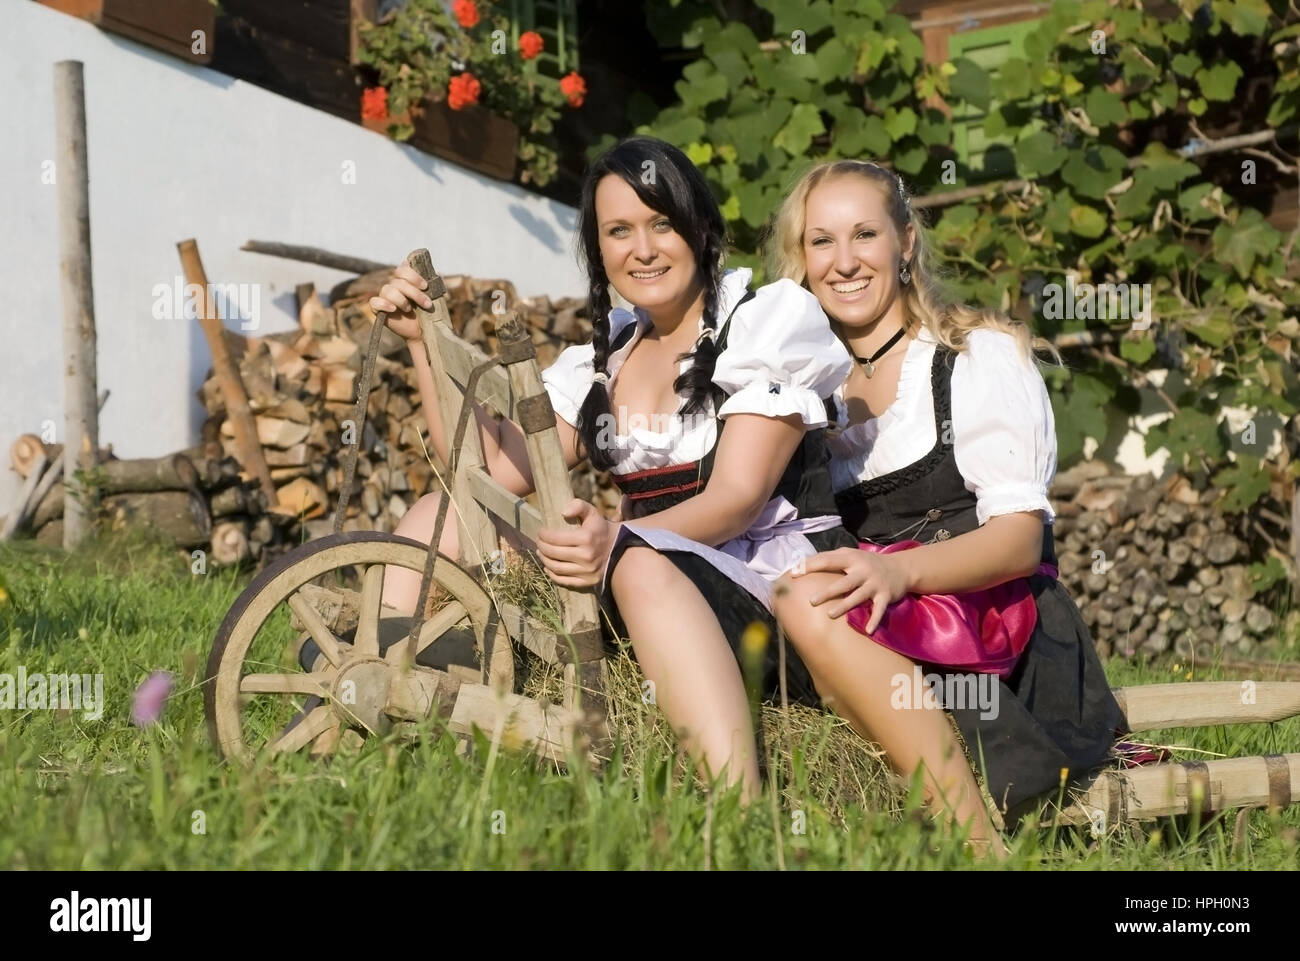 model released zwei junge frauen im dirndl mit schubkarre women stock photo 134368783 alamy. Black Bedroom Furniture Sets. Home Design Ideas